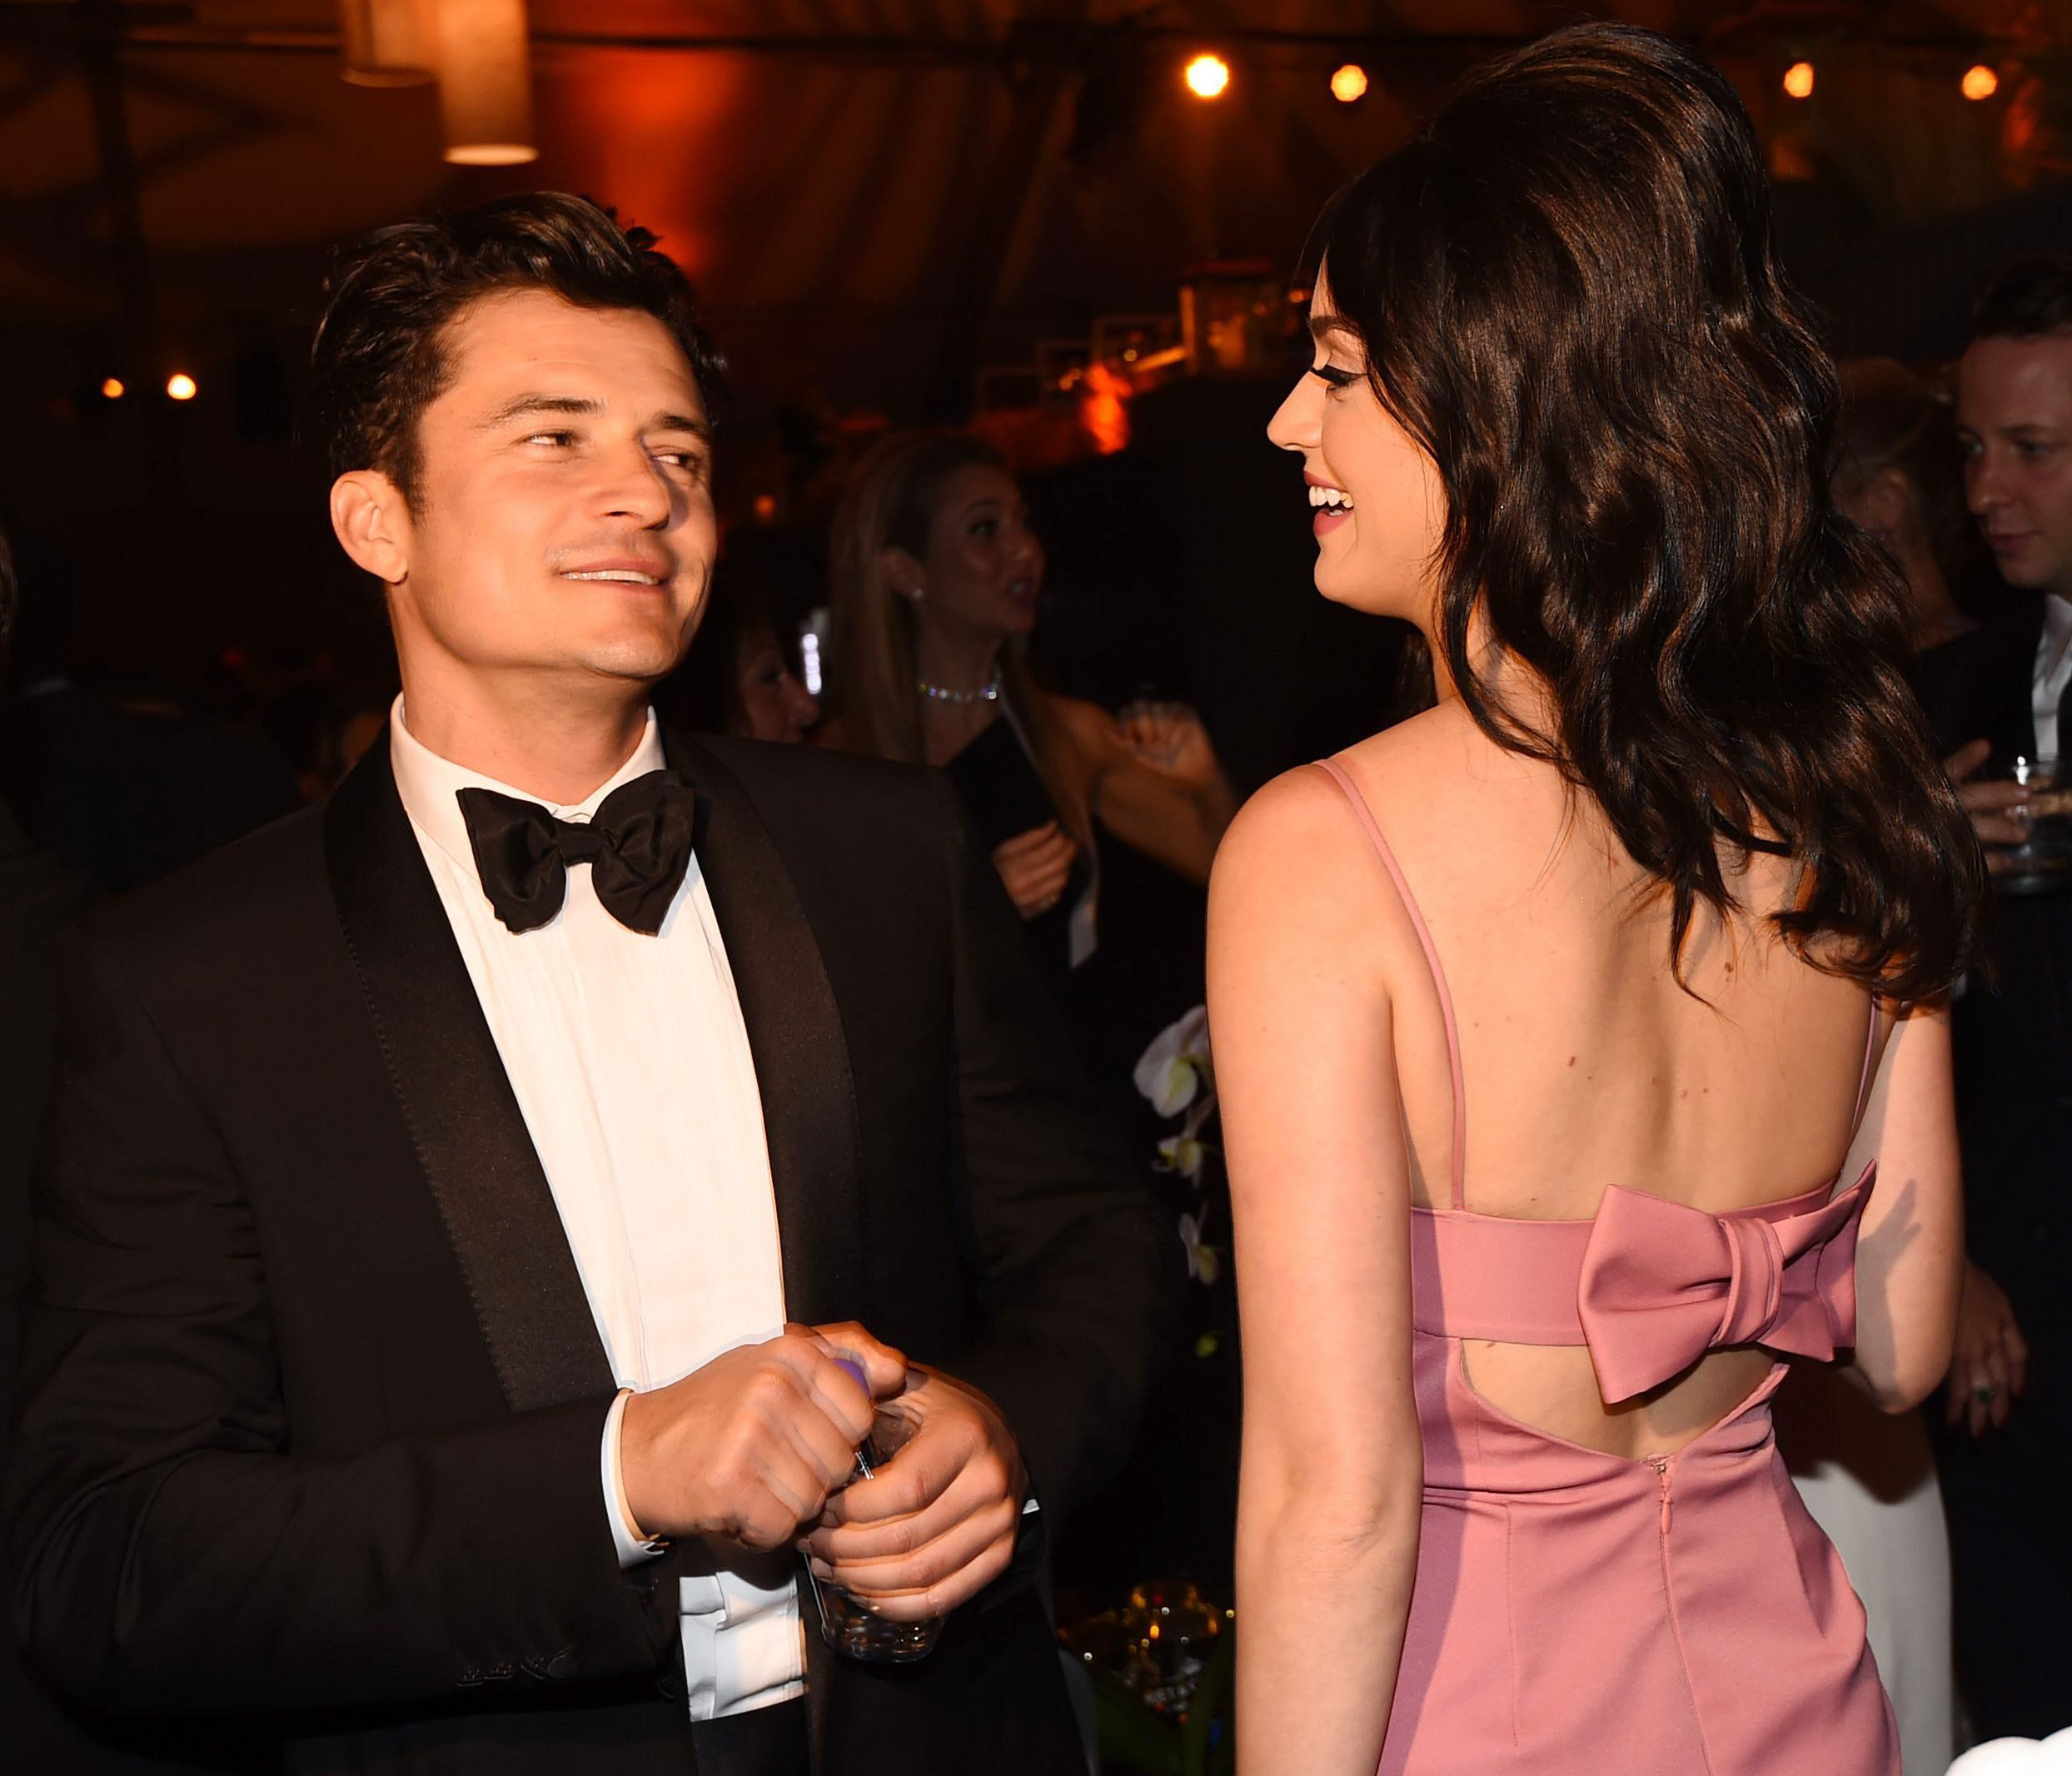 Orlando Bloom 'wants marriage and kids' with Katy Perry after flashing his penis to the world